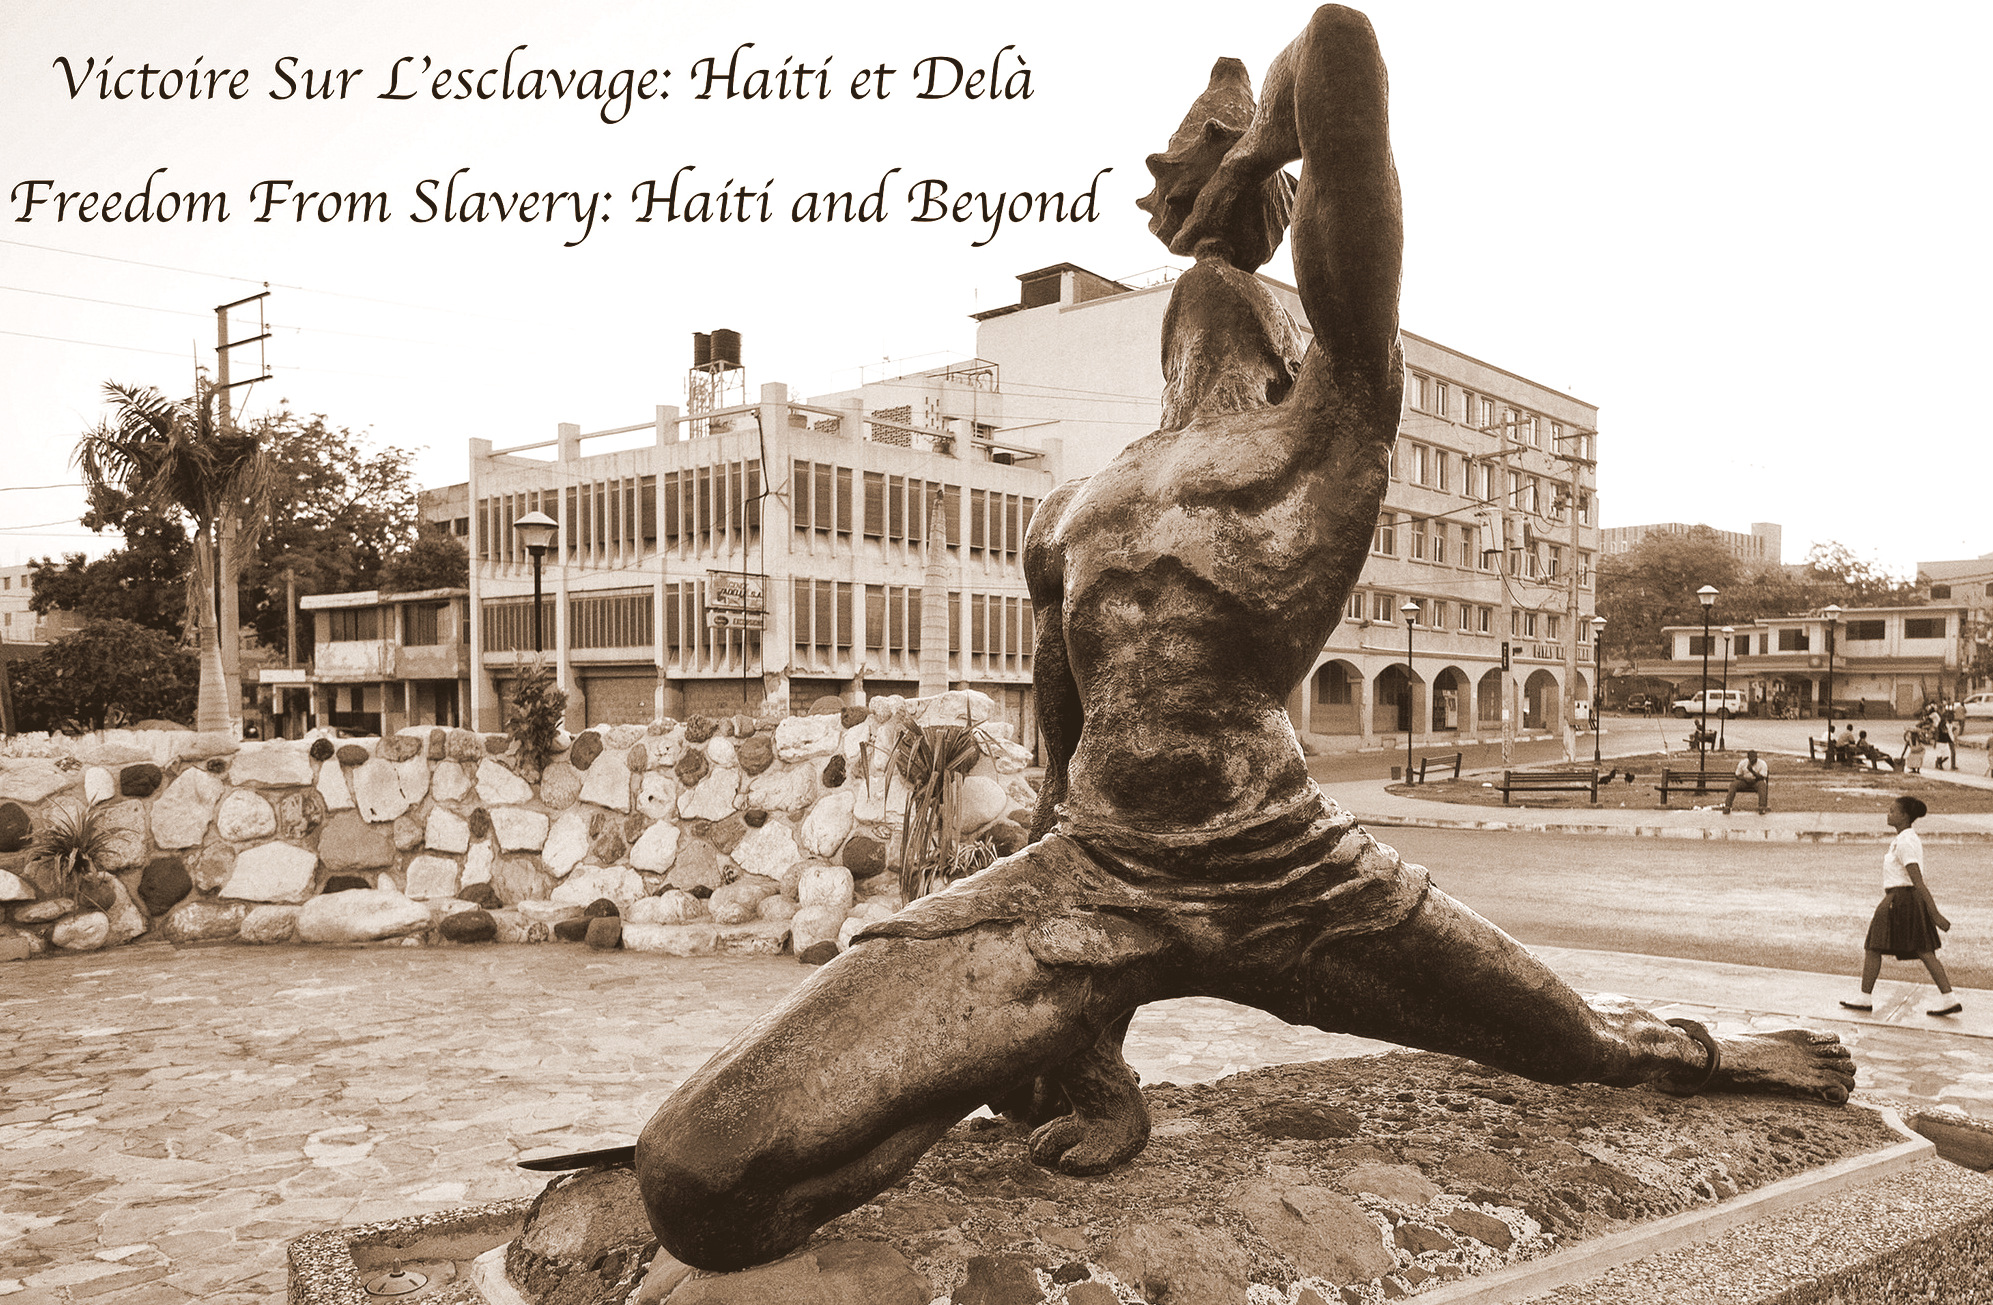 haiti revolution Media in category haitian revolution the following 57 files are in this category, out of 57 total.